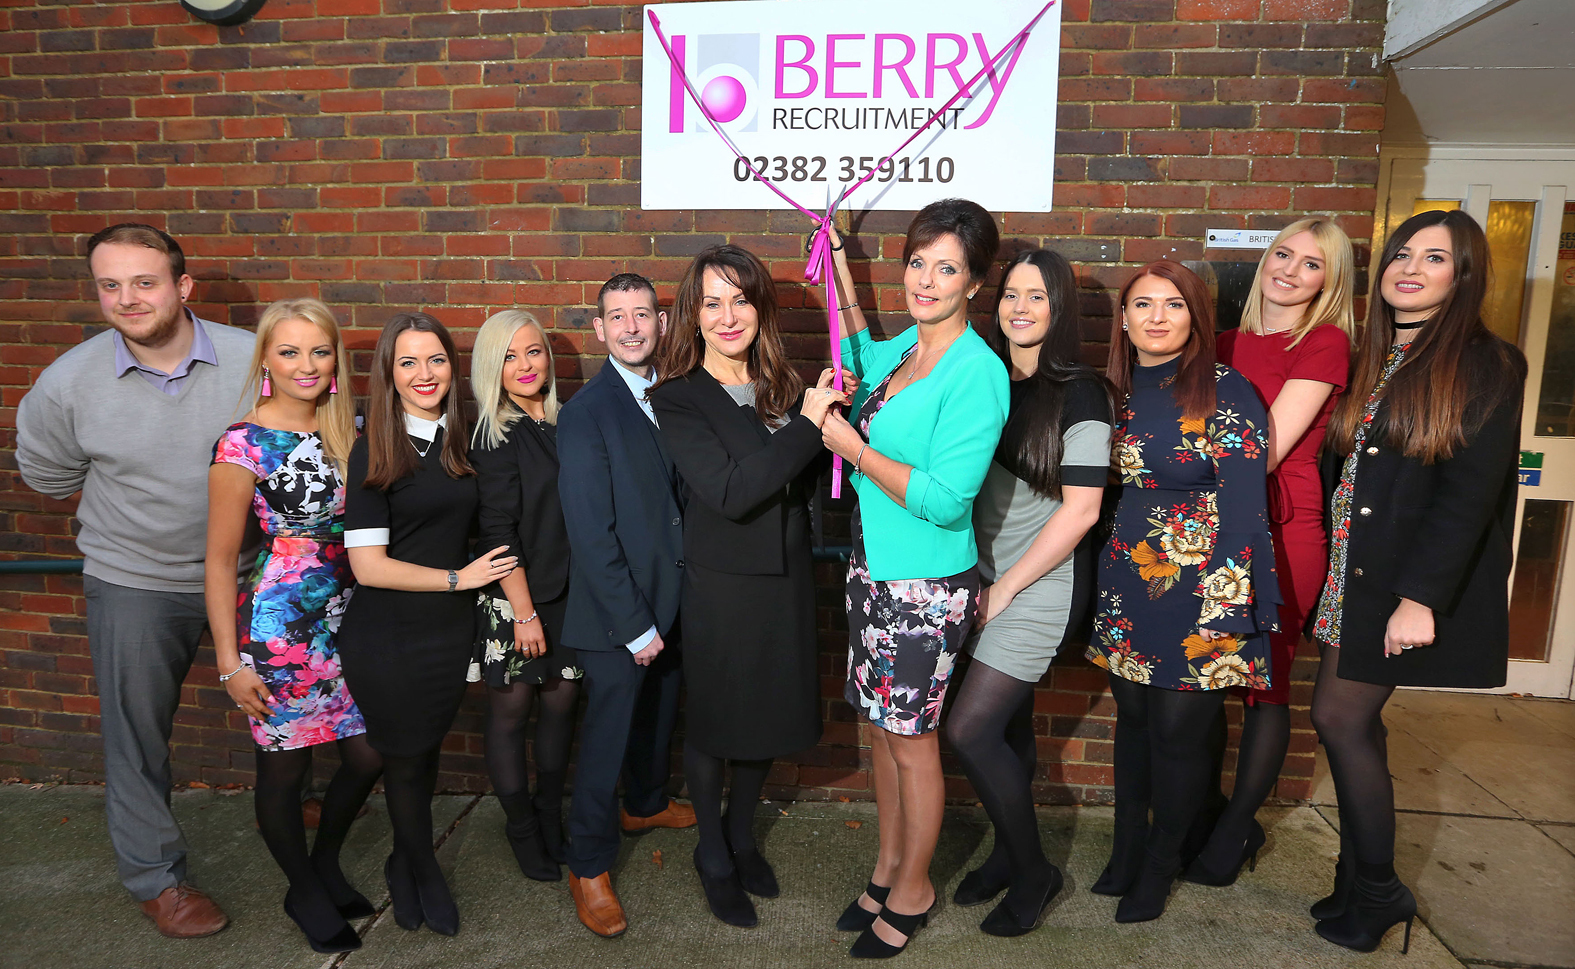 Berry Recruitment celebrates the opening of its new Southampton branch.